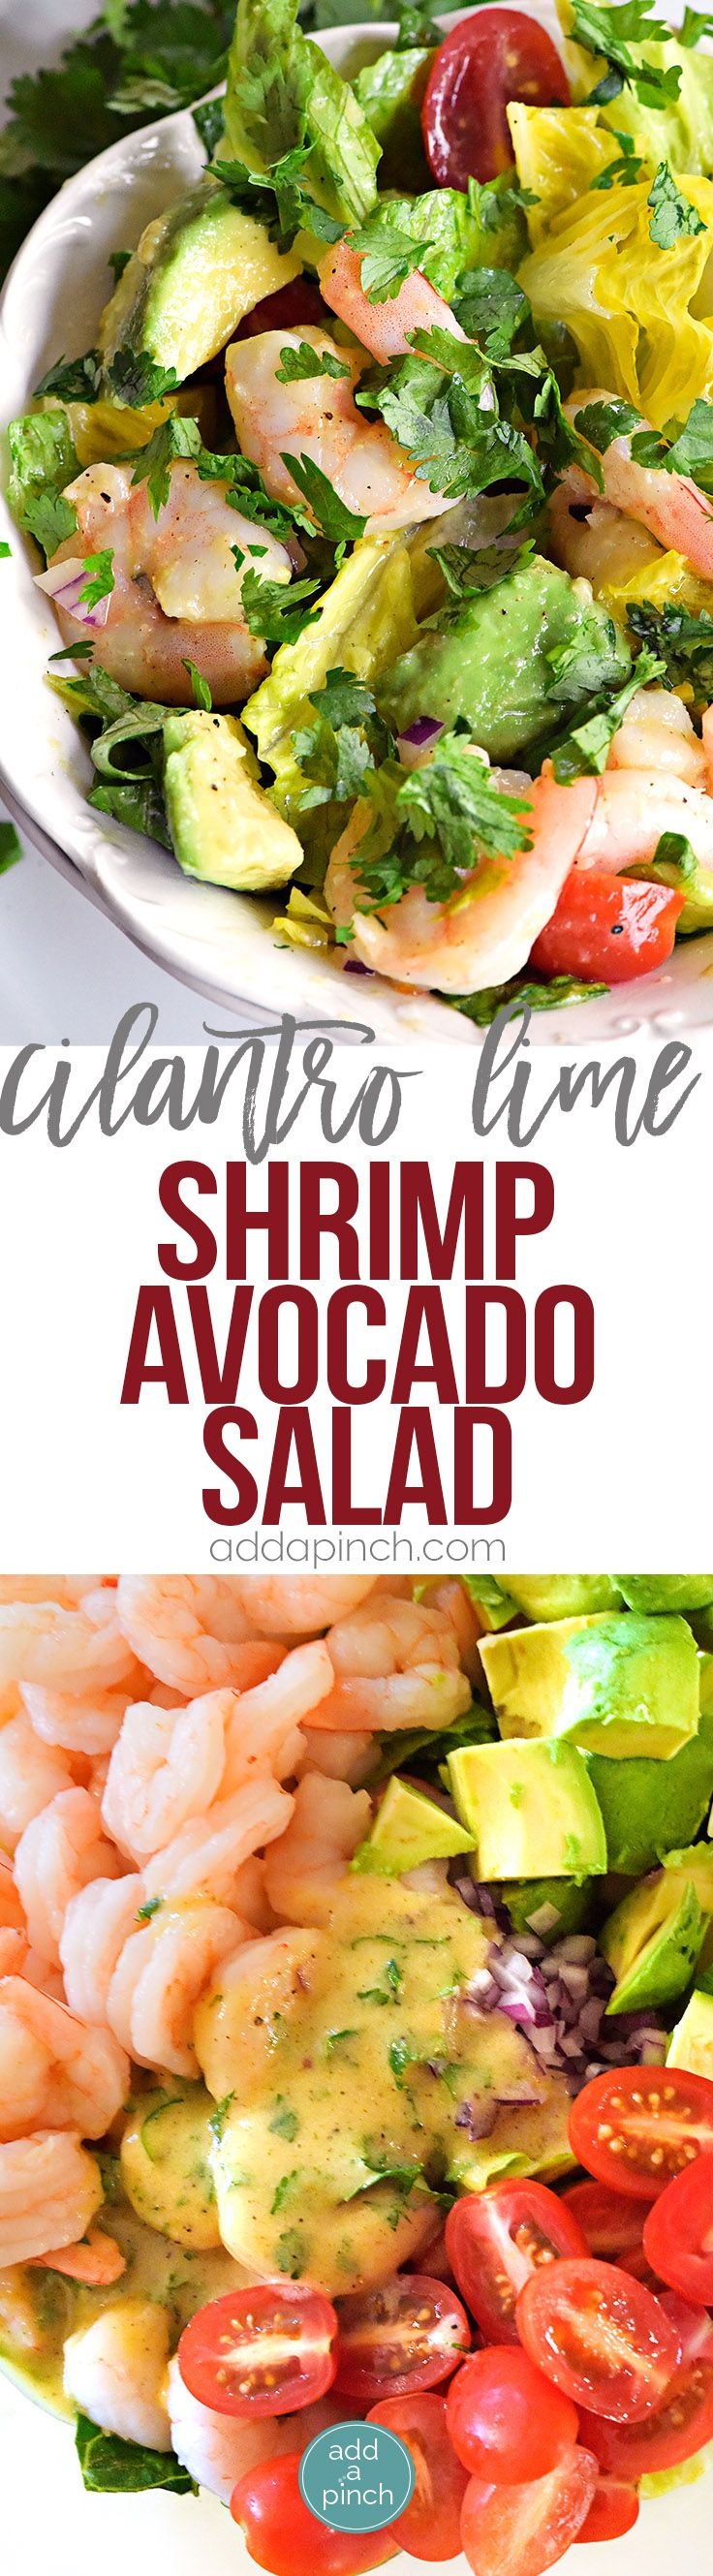 Cilantro Lime Shrimp Avocado Salad Recipe - This Cilantro Lime Shrimp Avocado Salad recipe has all the flavors of summer in every delicious bite! So quick and easy to toss together and perfect for a l